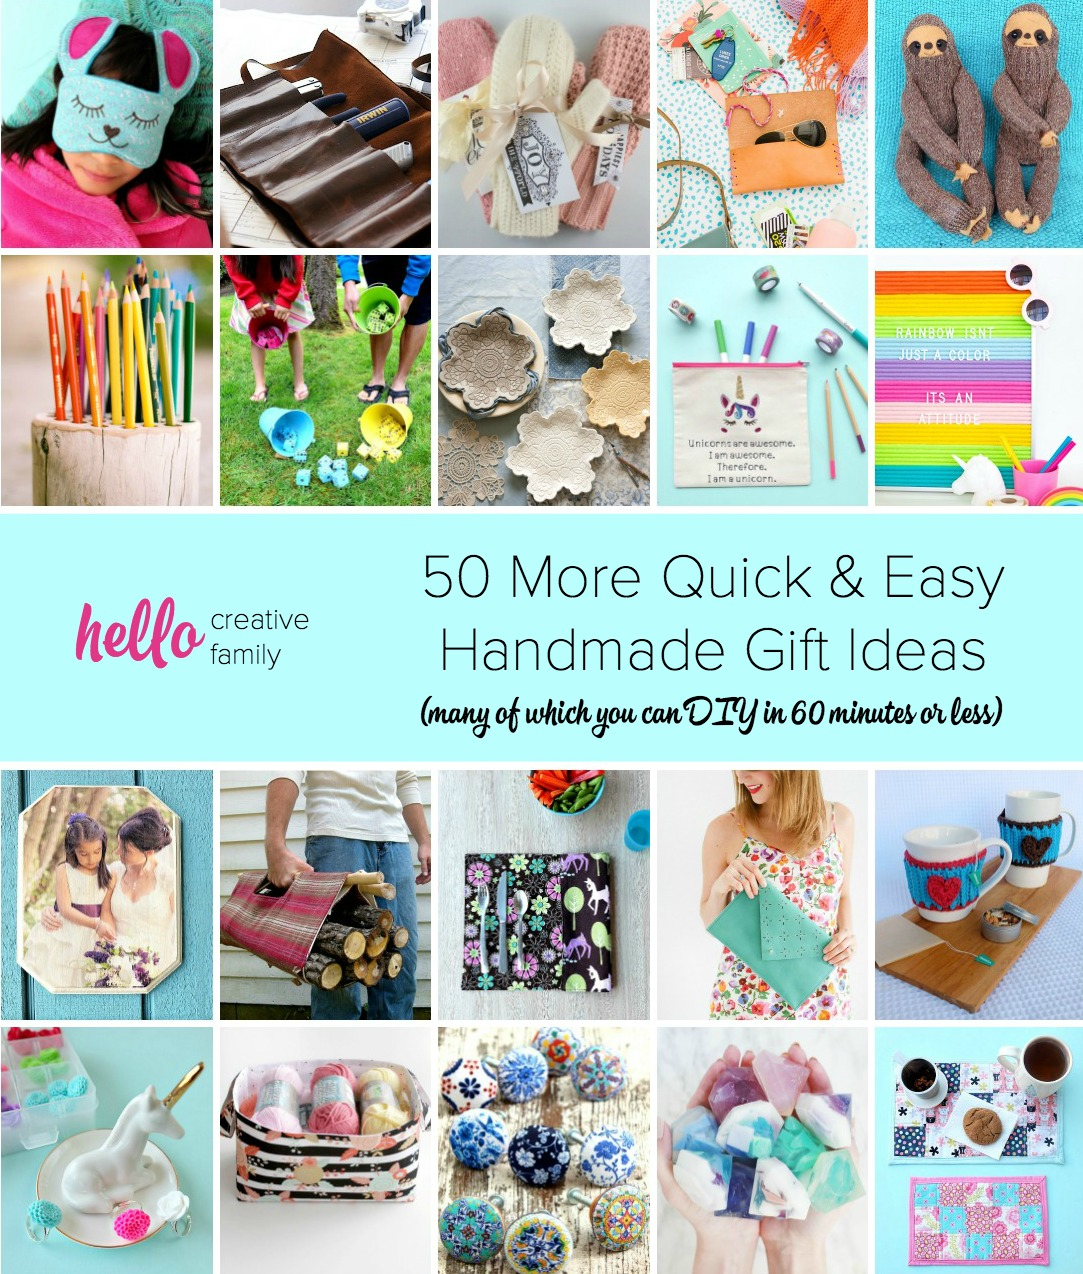 Awesome Diy Mother's Day Gifts 50 More Quick And Easy Handmade Gift Ideas 1 Hour Or Less